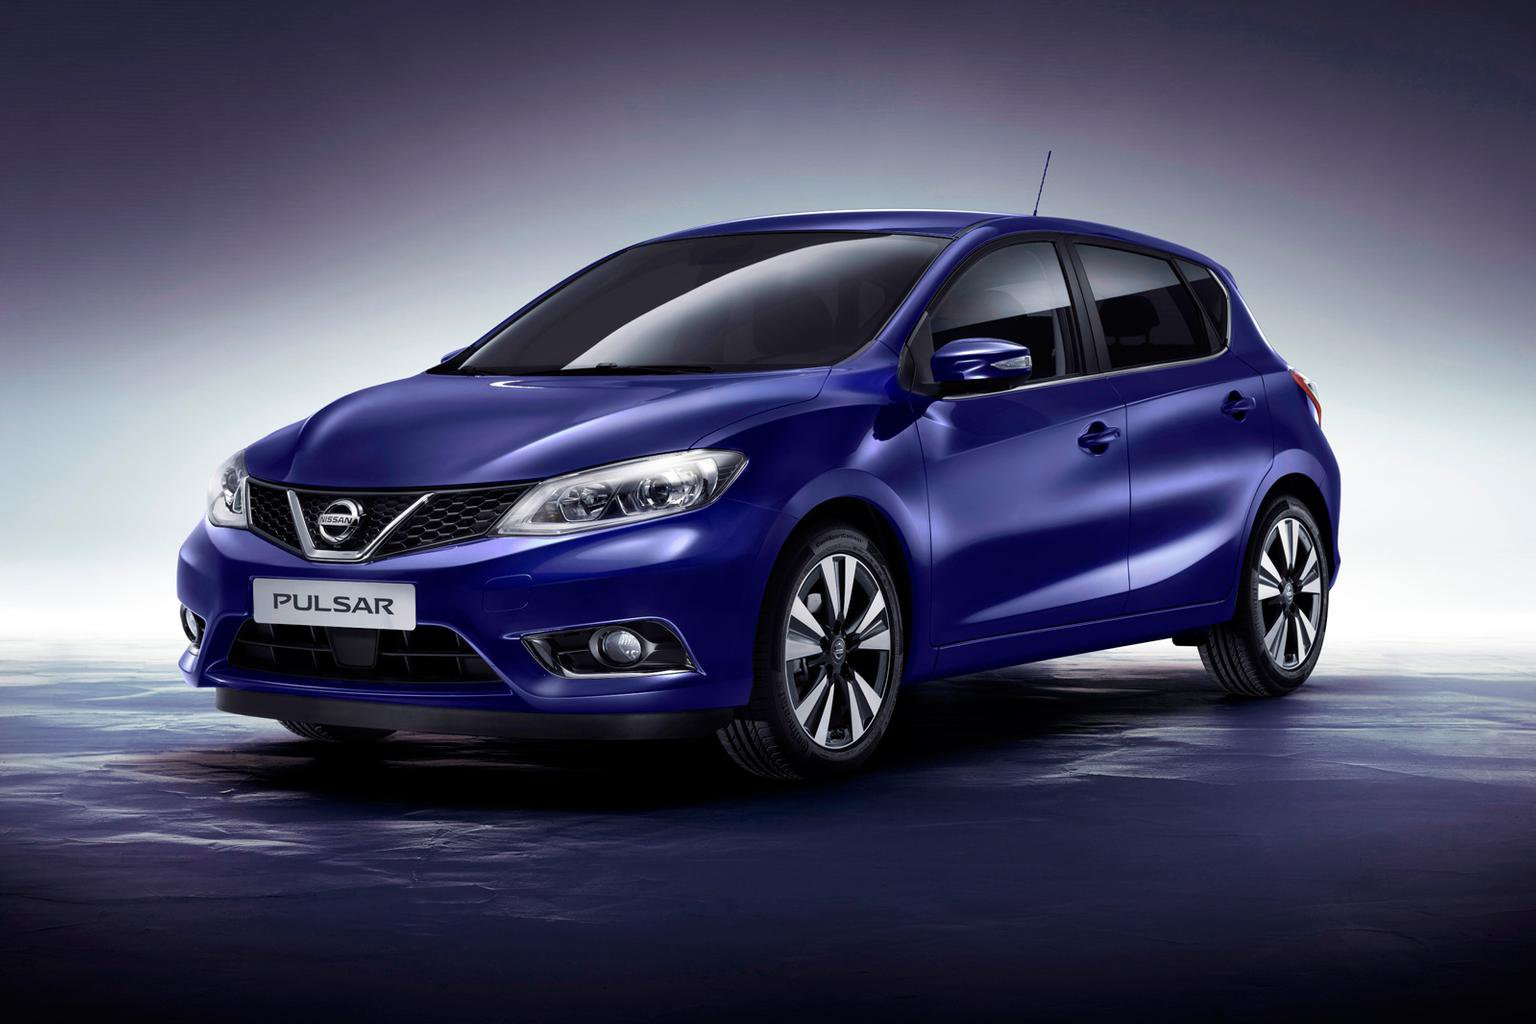 2014 Nissan Pulsar to cost from 15,995